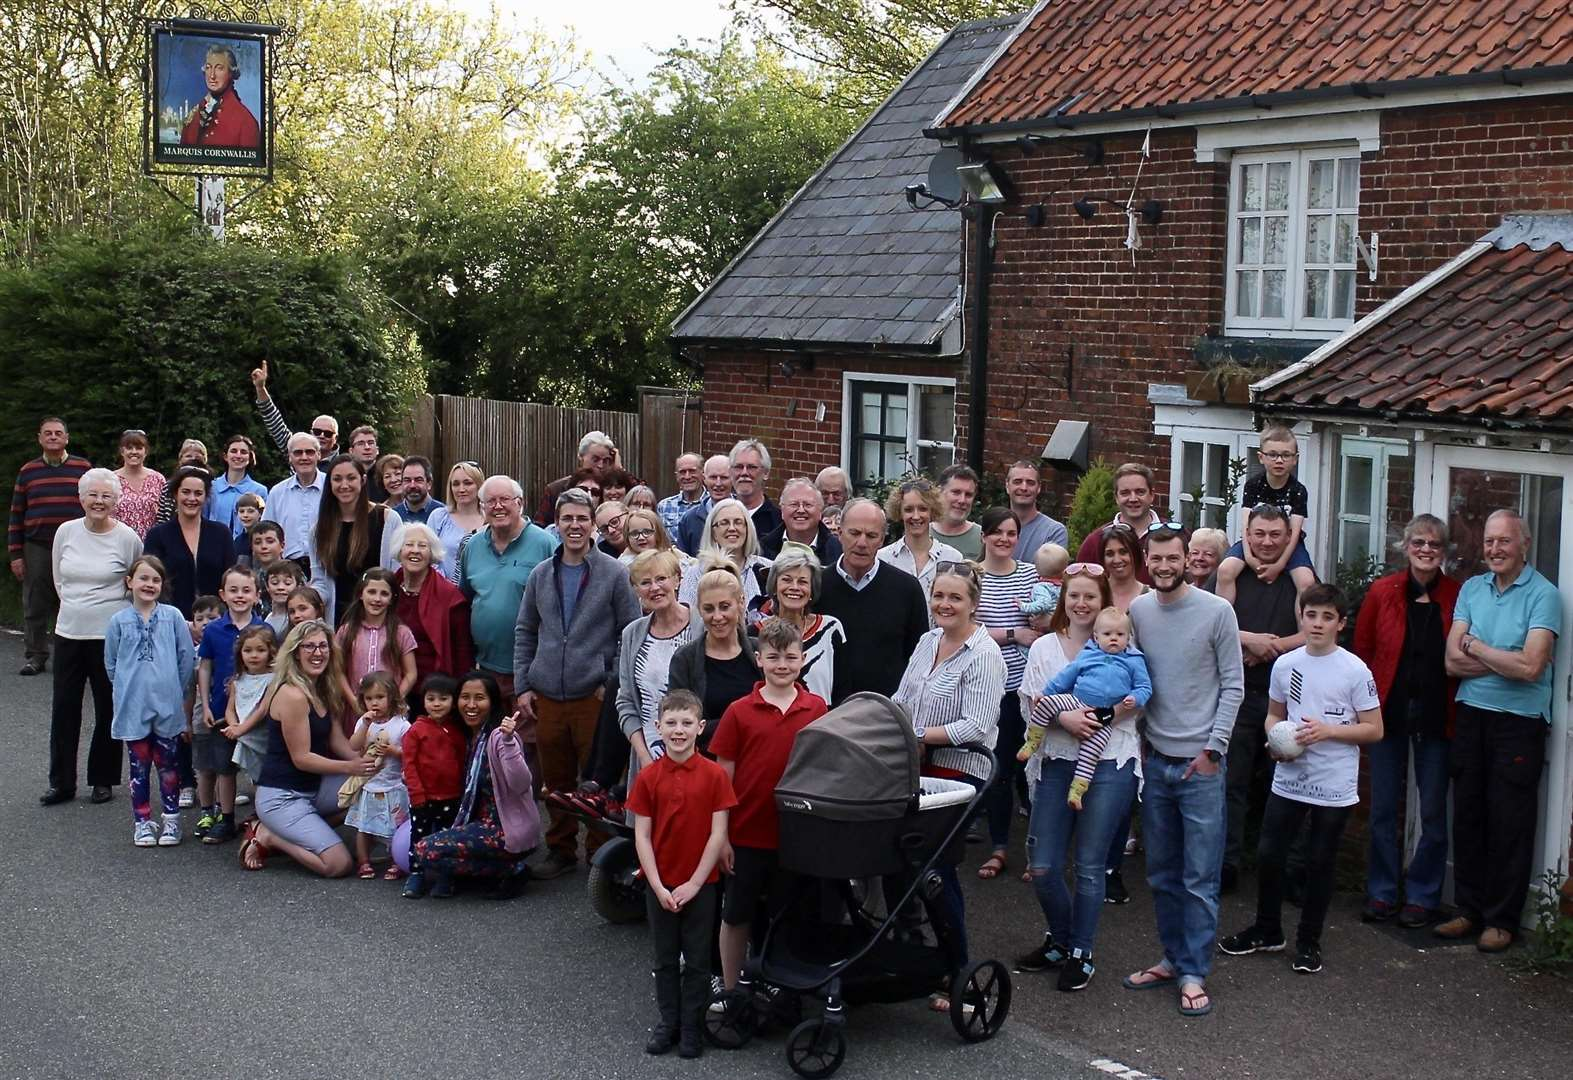 Shares offered in campaign to save village pub